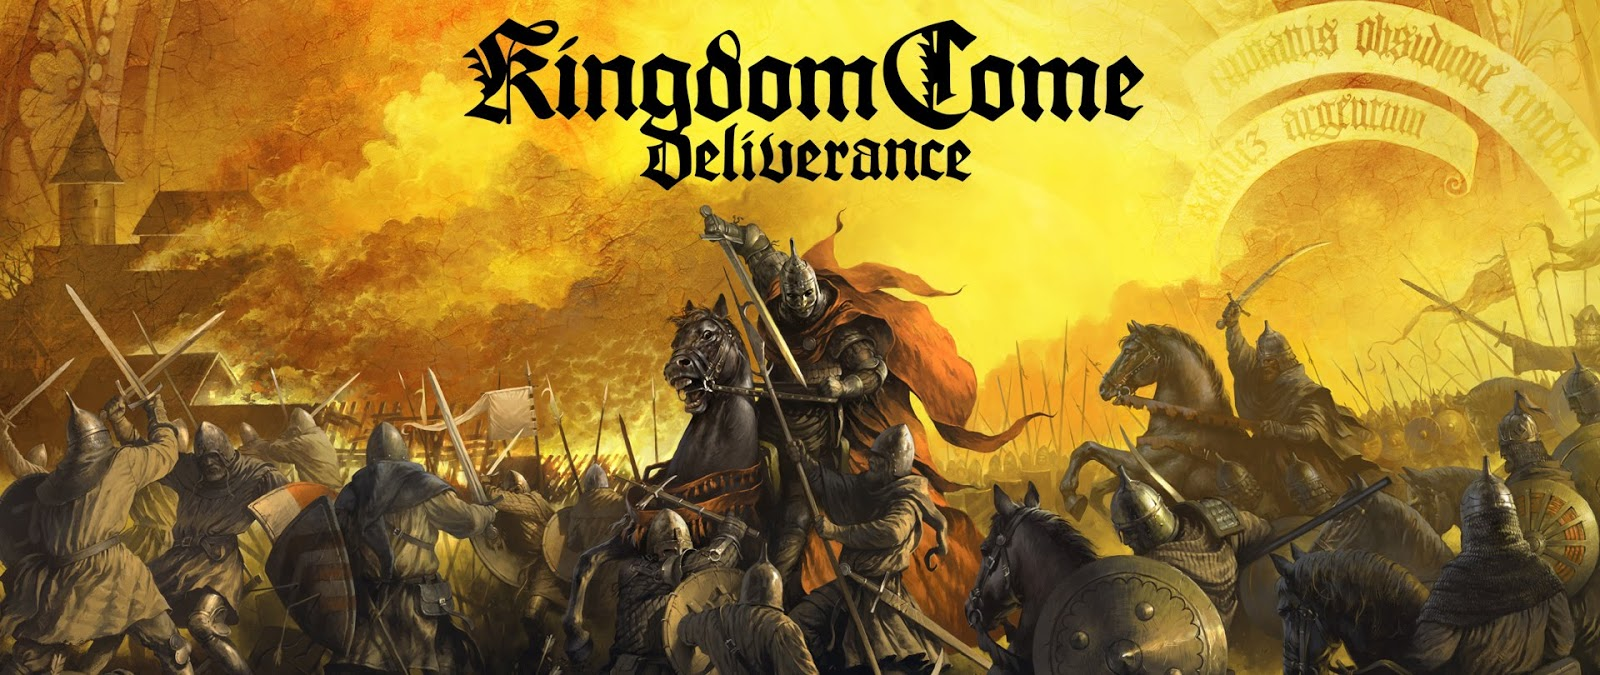 kingdom-come-deliverance-royal-edition-v192404s